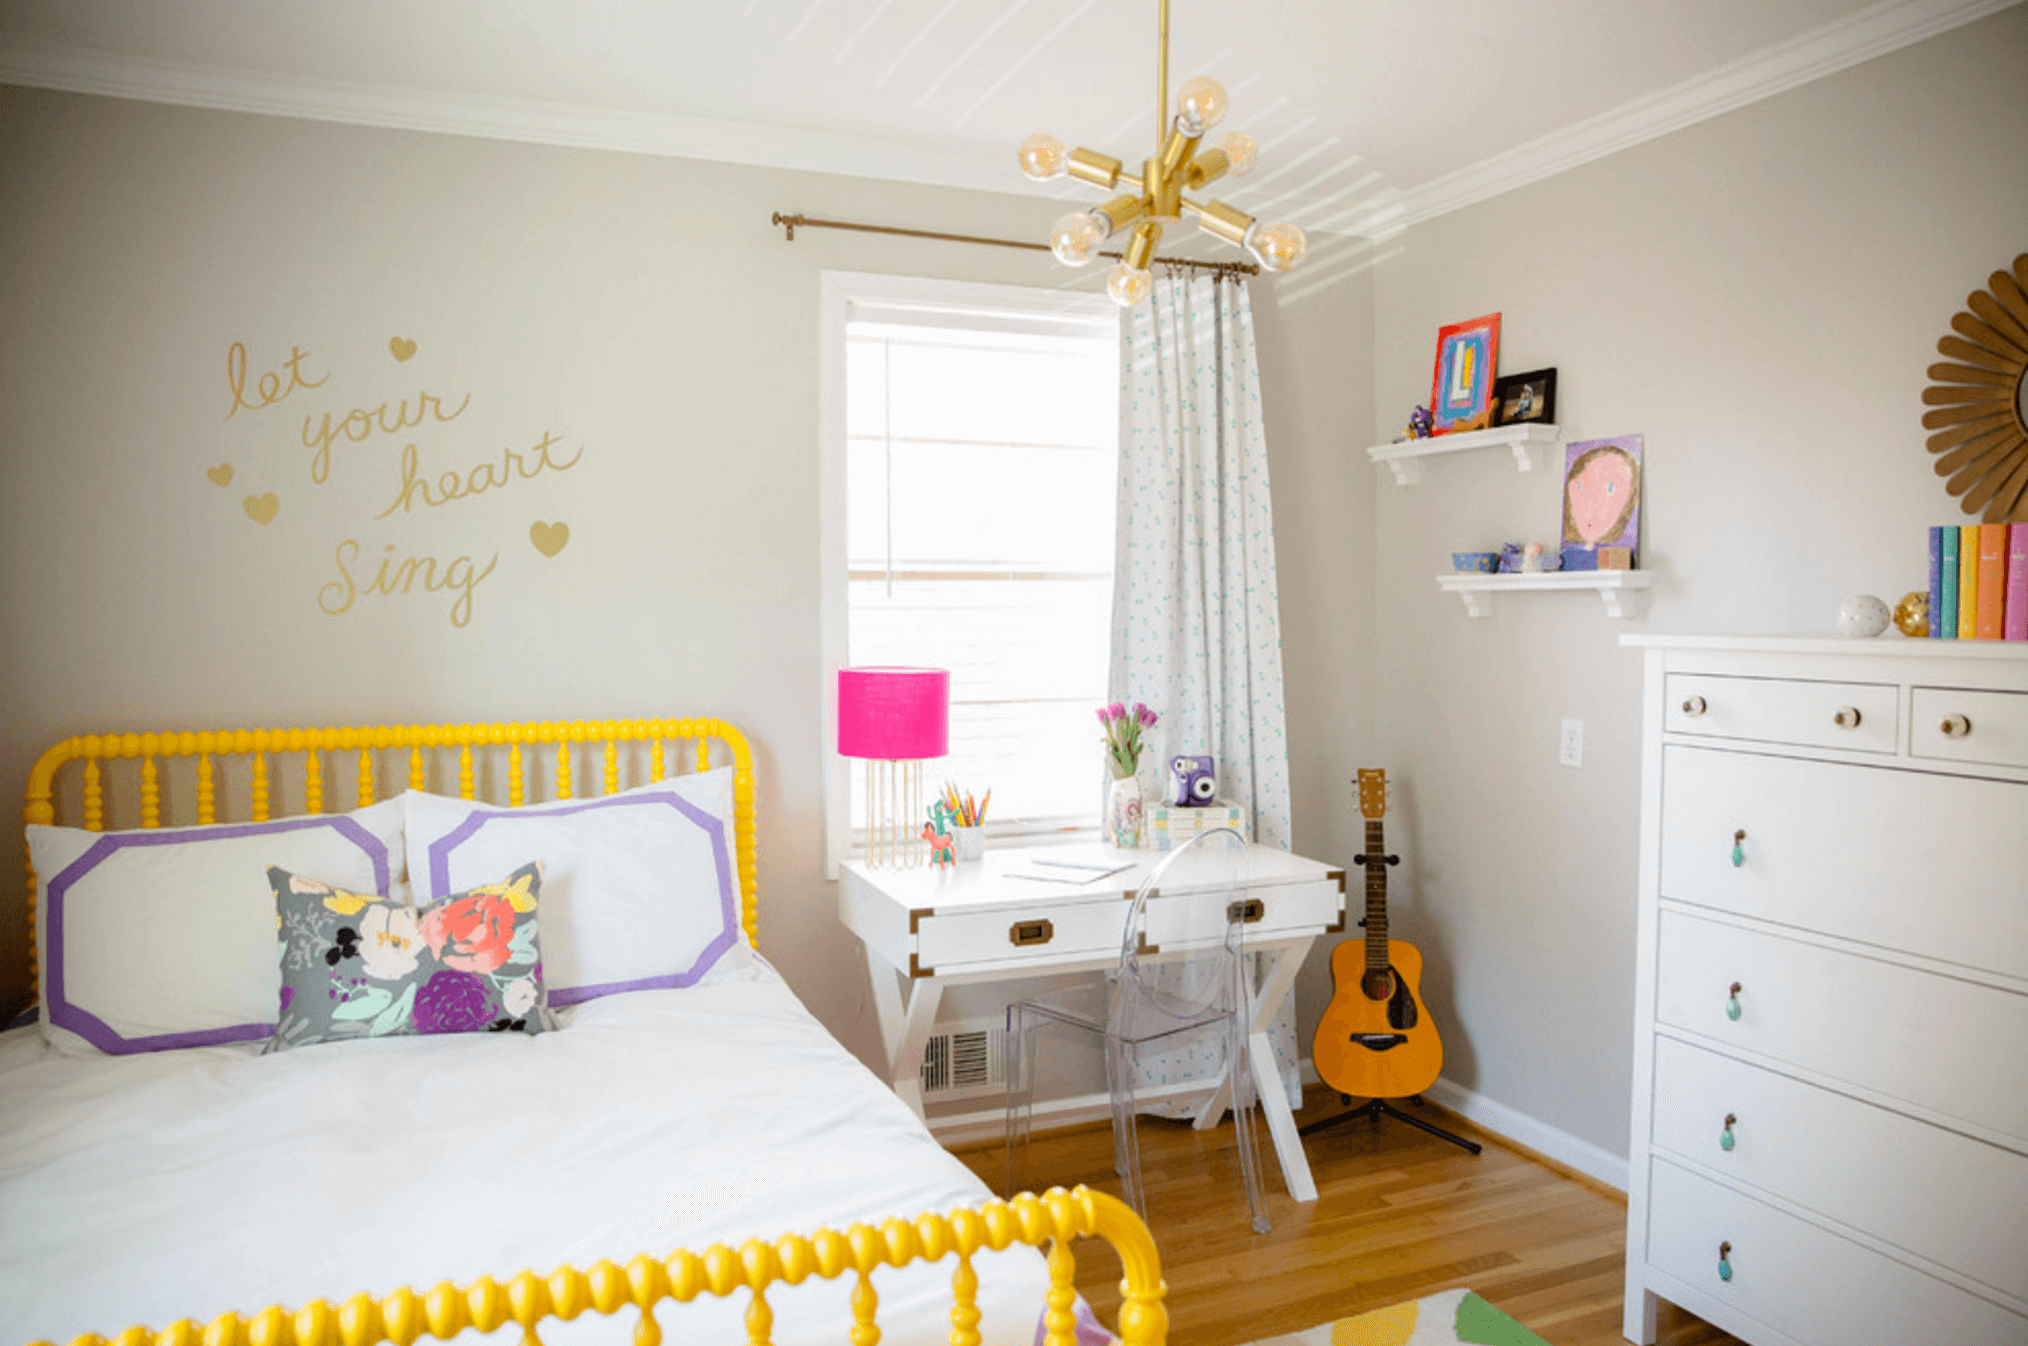 28 ideas for adding color to a kids room freshome com rh freshome com